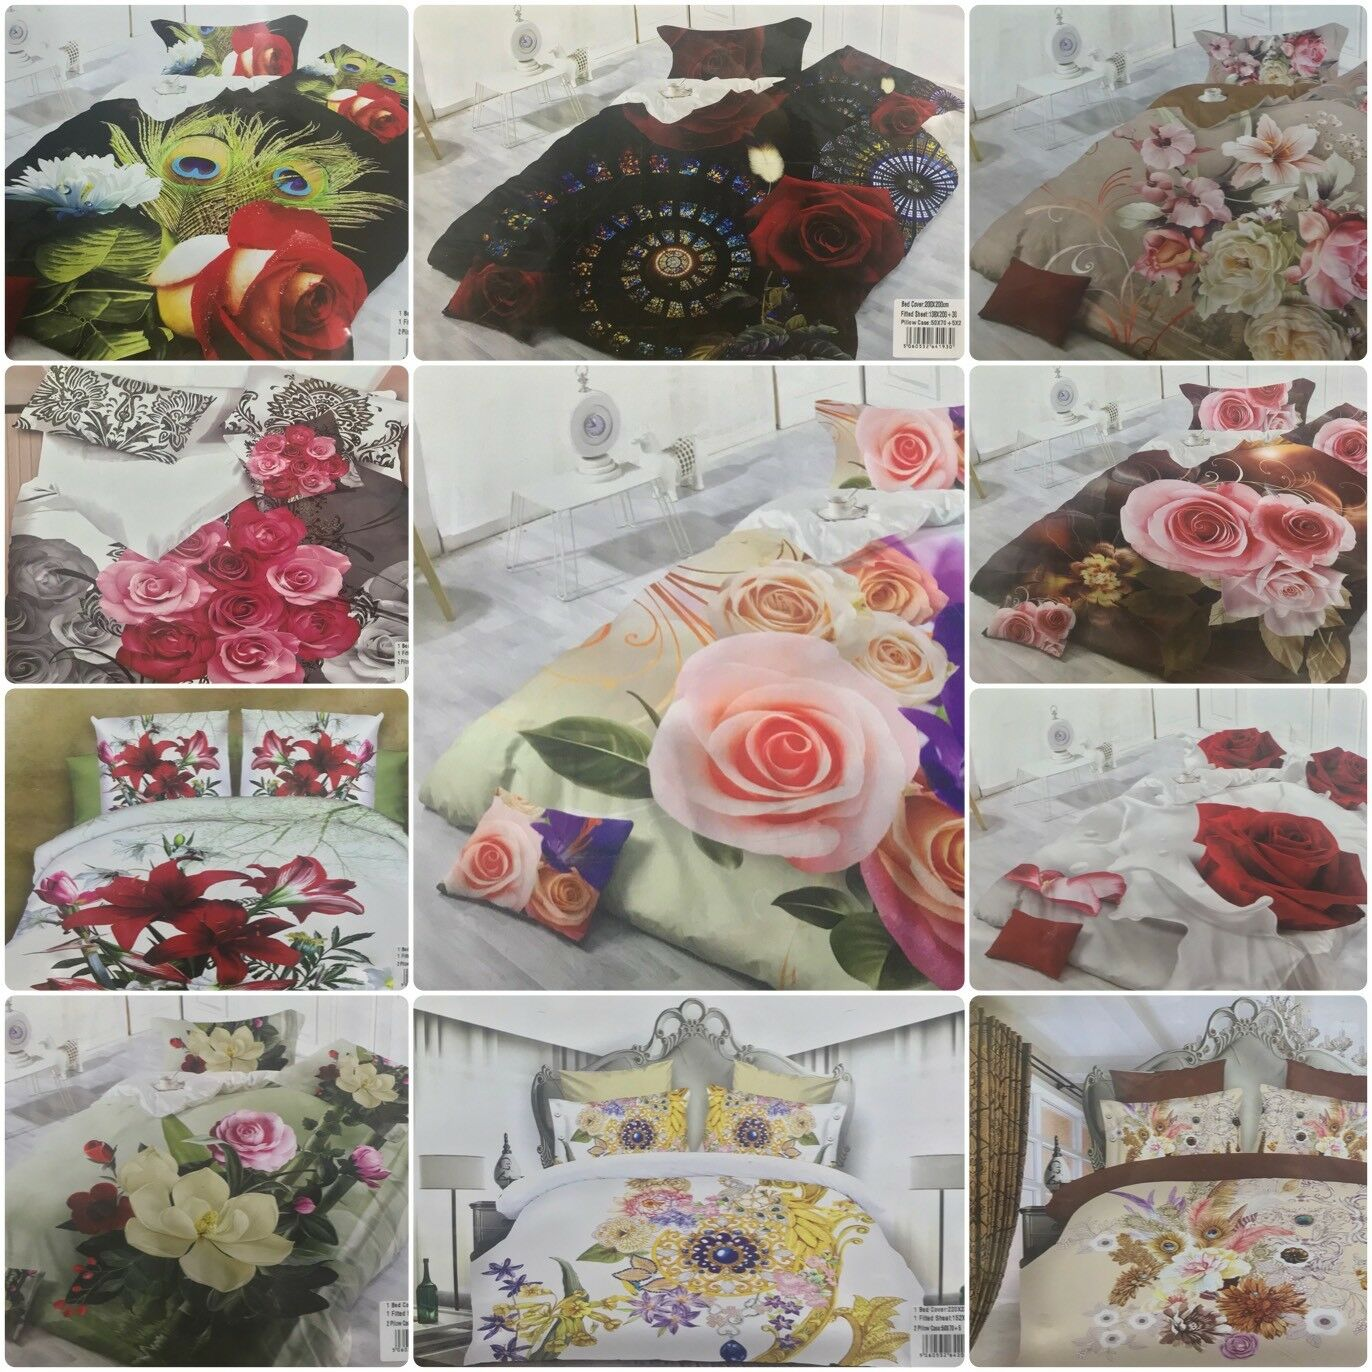 10x Job Lot Wholesale King Duvet Cover Floral 3D Full bed Sets & Fitted Sheet